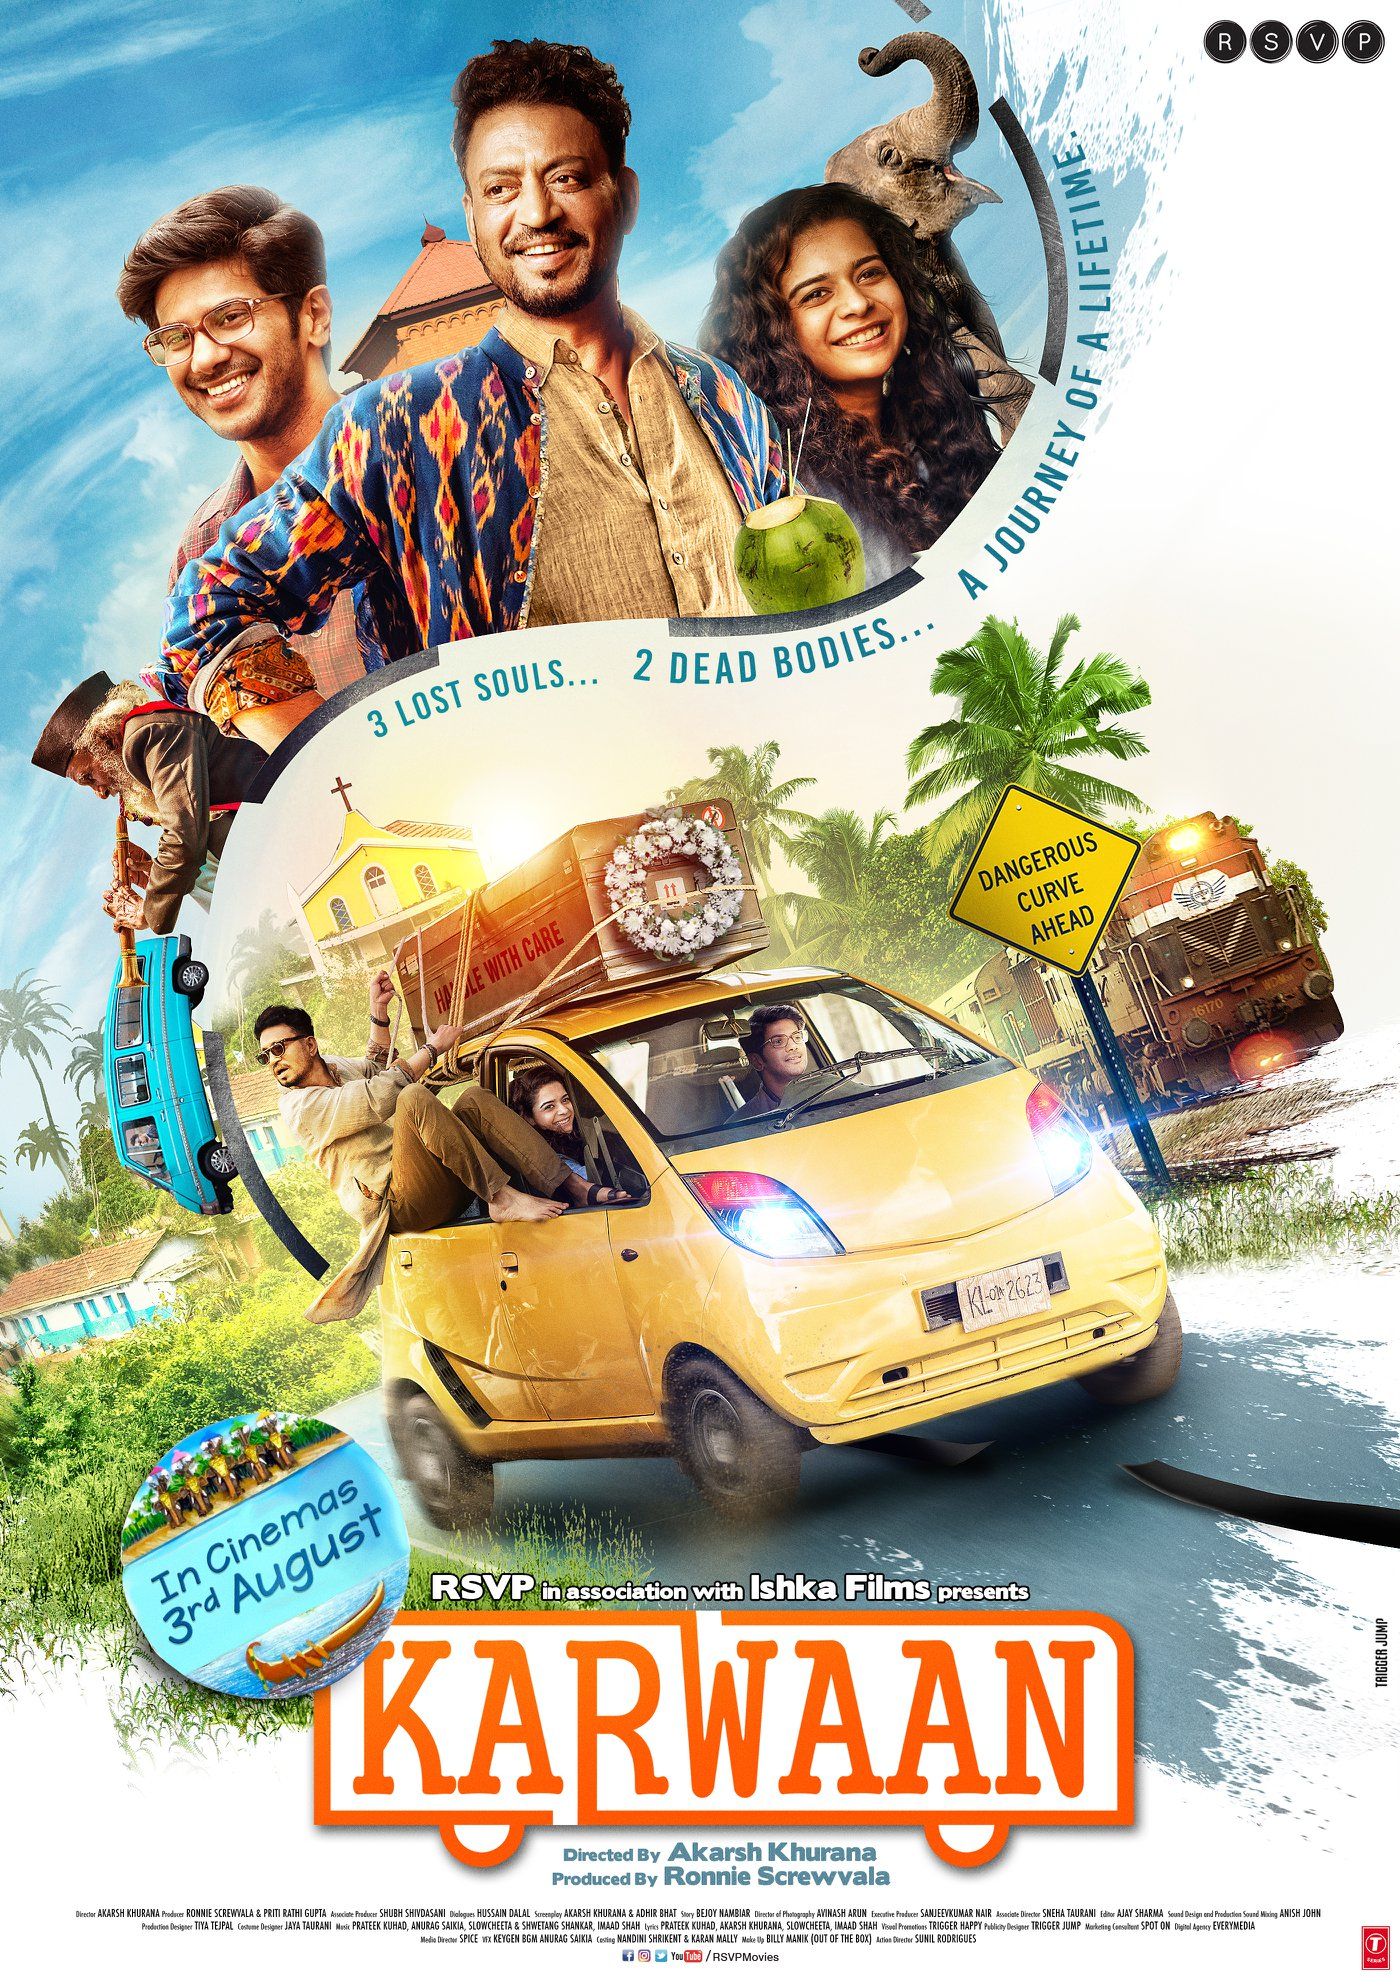 The Journey of a Lifetime: Love, Life & Redemption Await In KARWAAN, Releasing 3rd August 2018